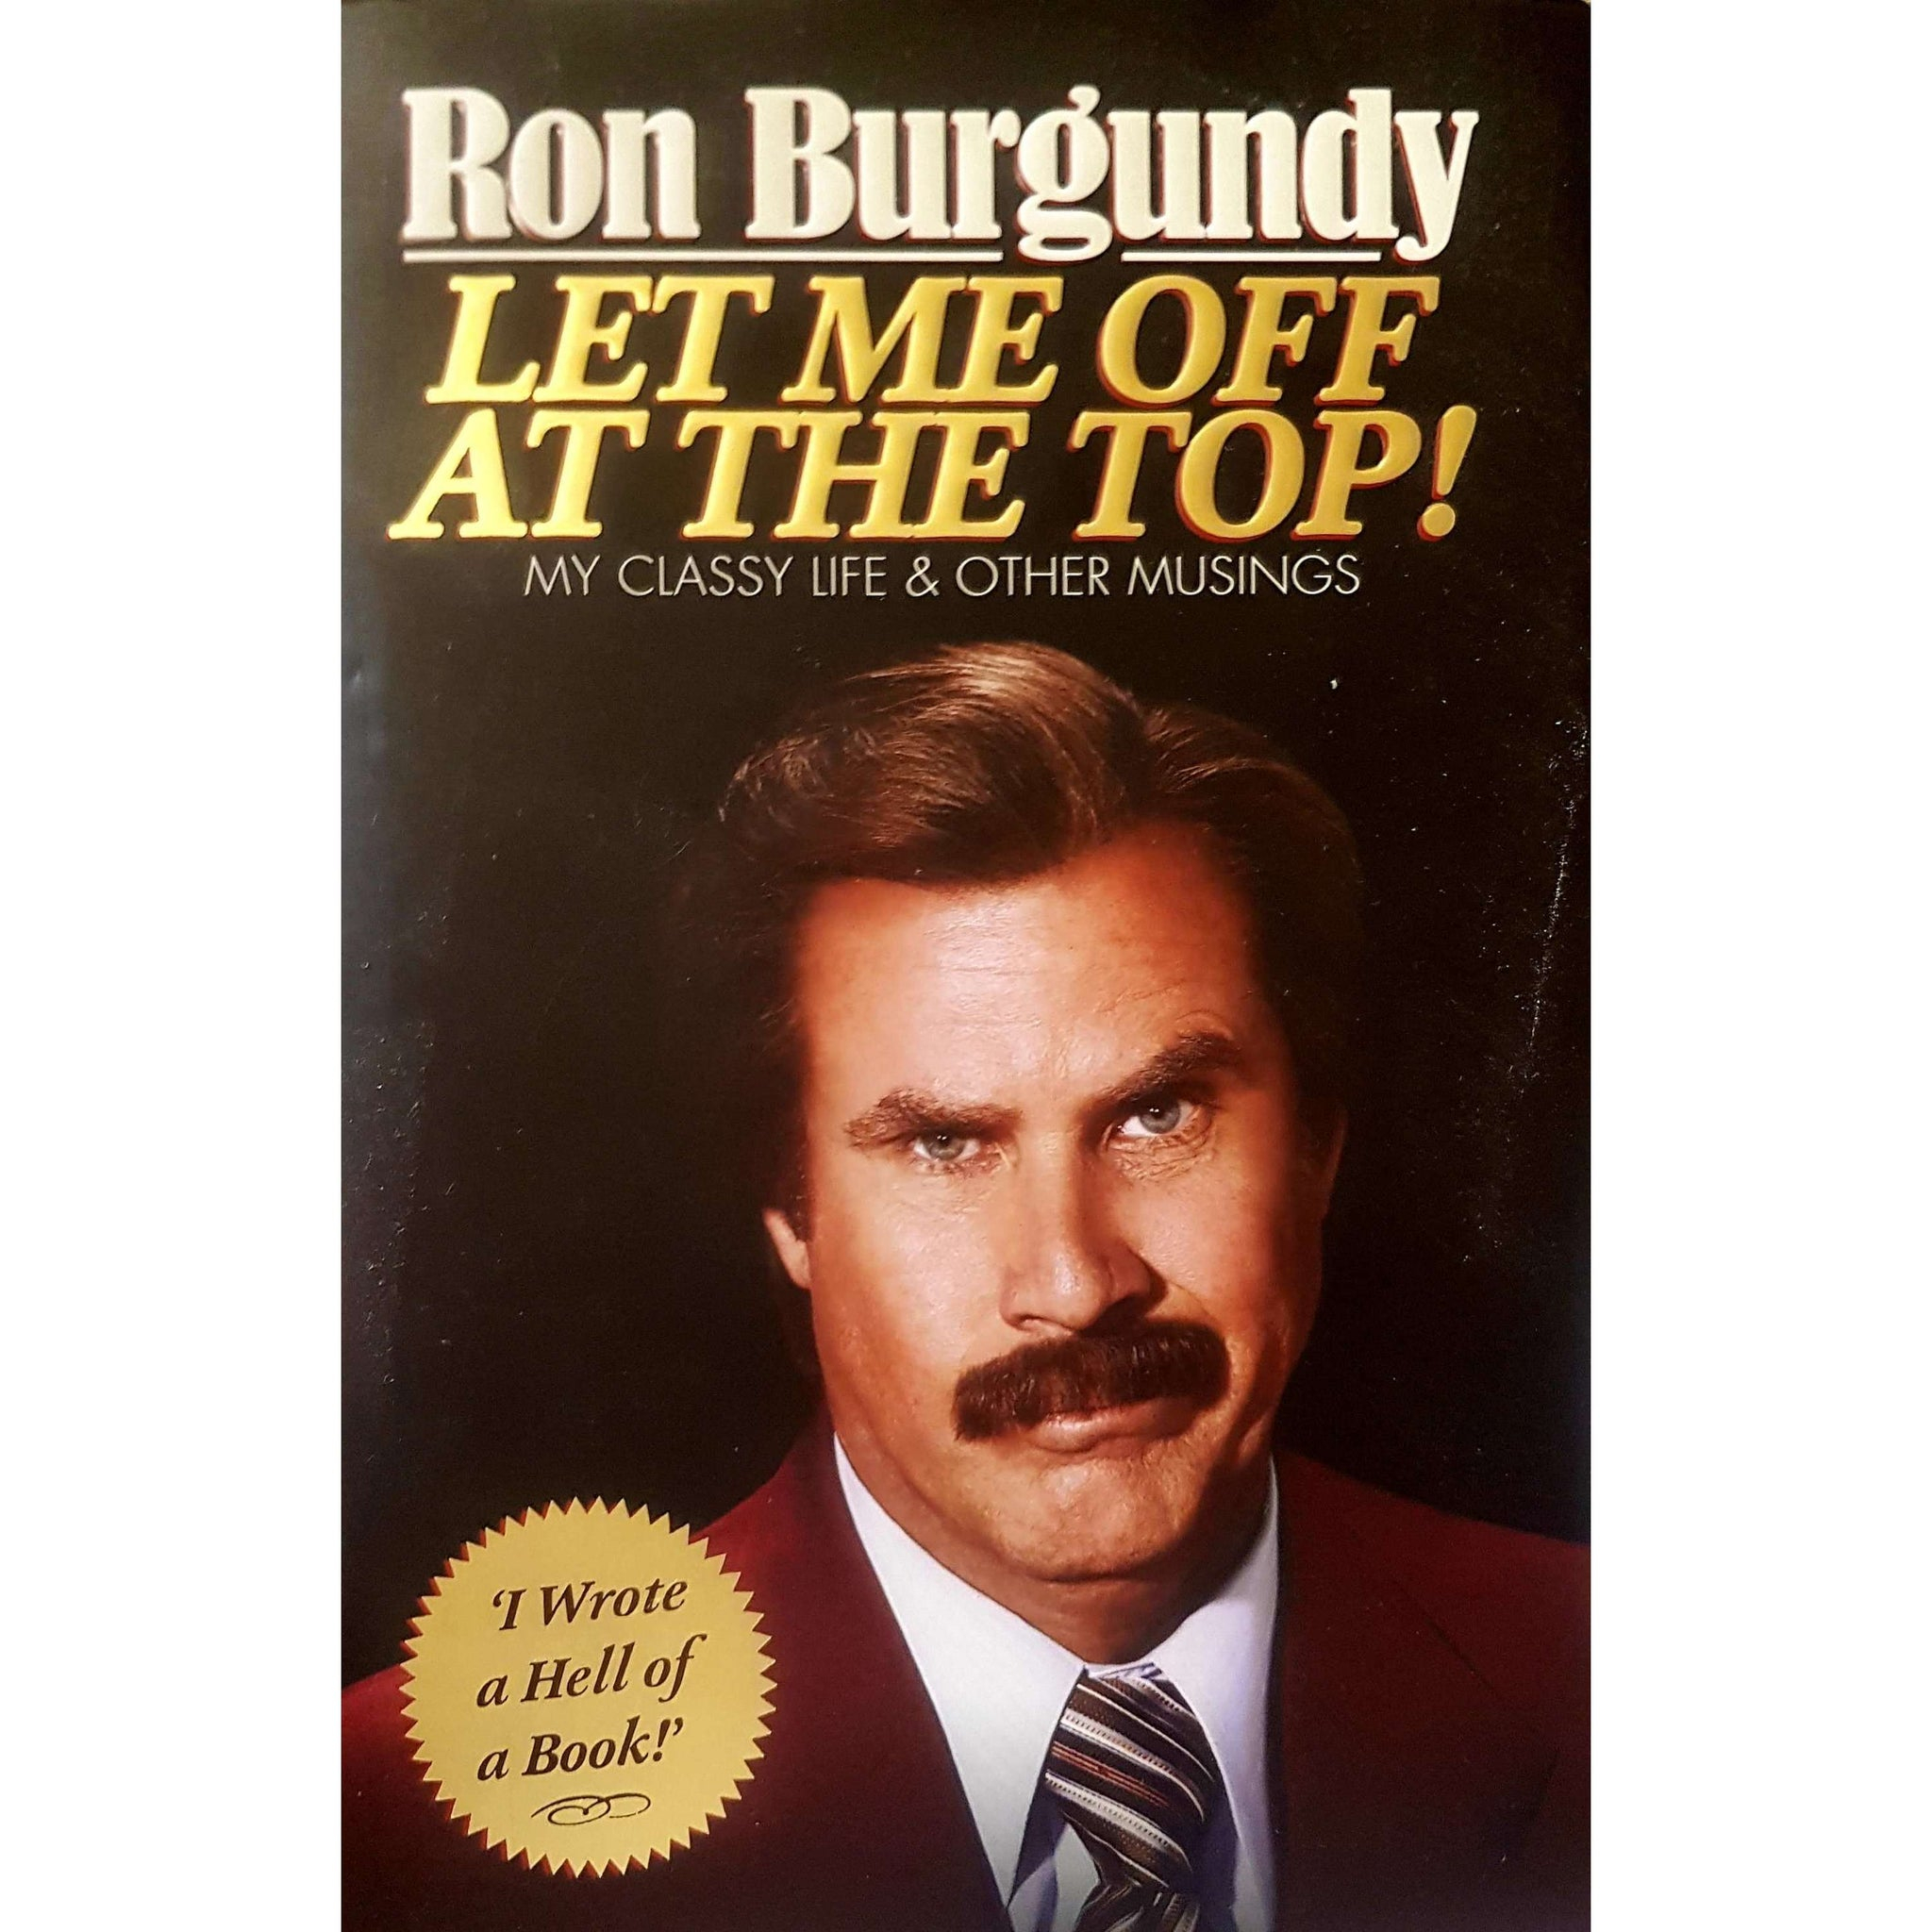 Let Me Off At The Top! - Ron Burgundy (Preloved)